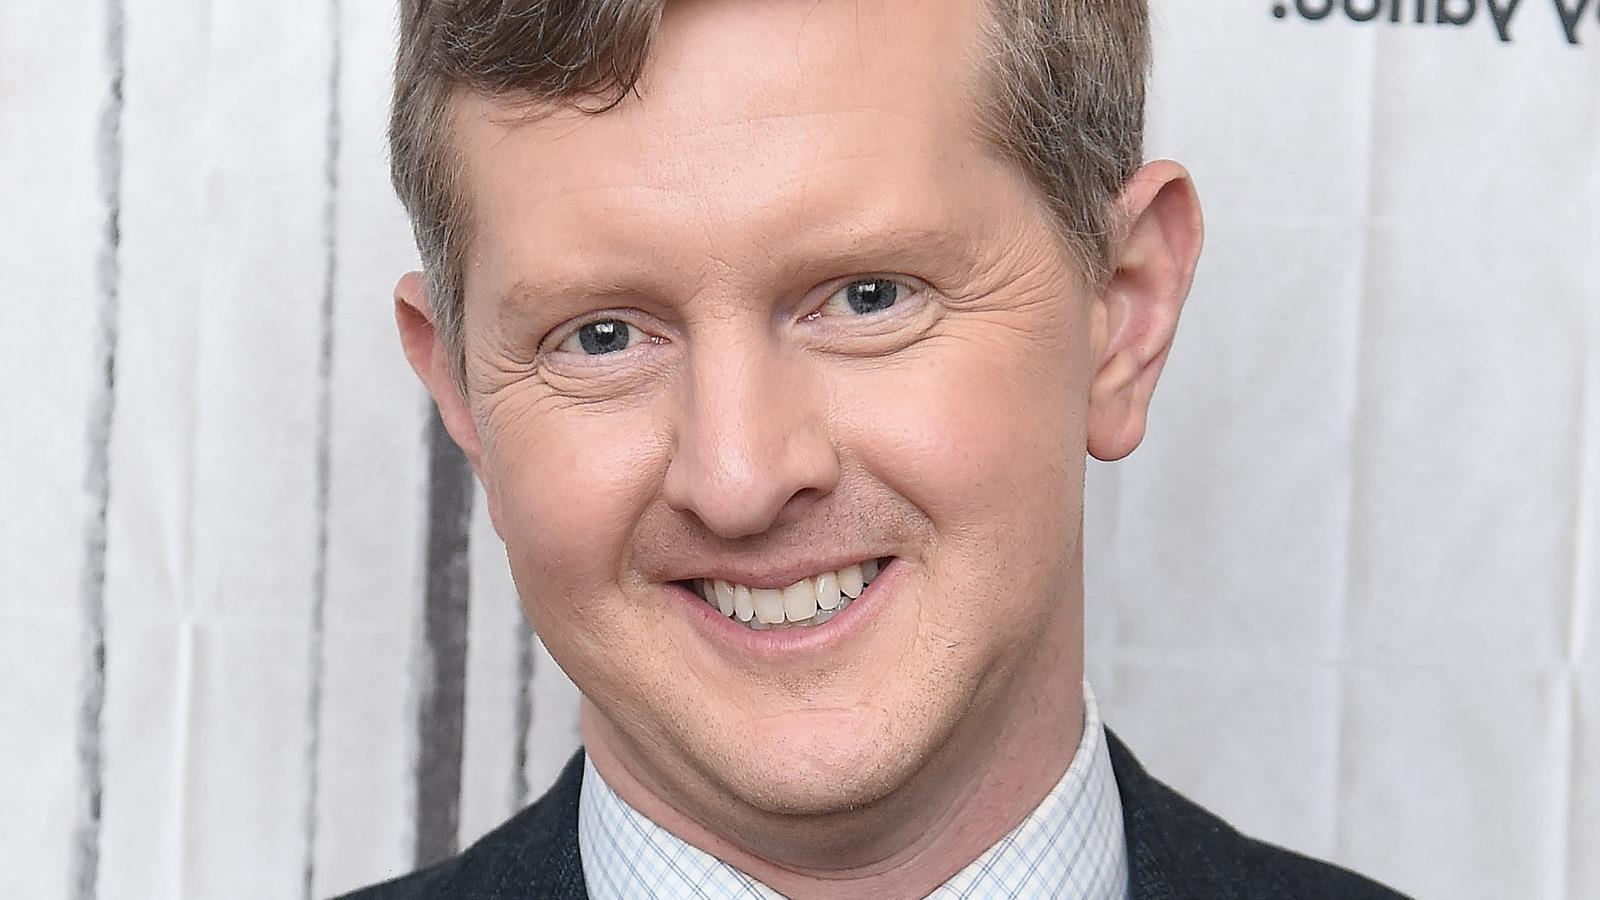 The Real Reason Fans Think Ken Jennings Will Be The New Jeopardy! Host